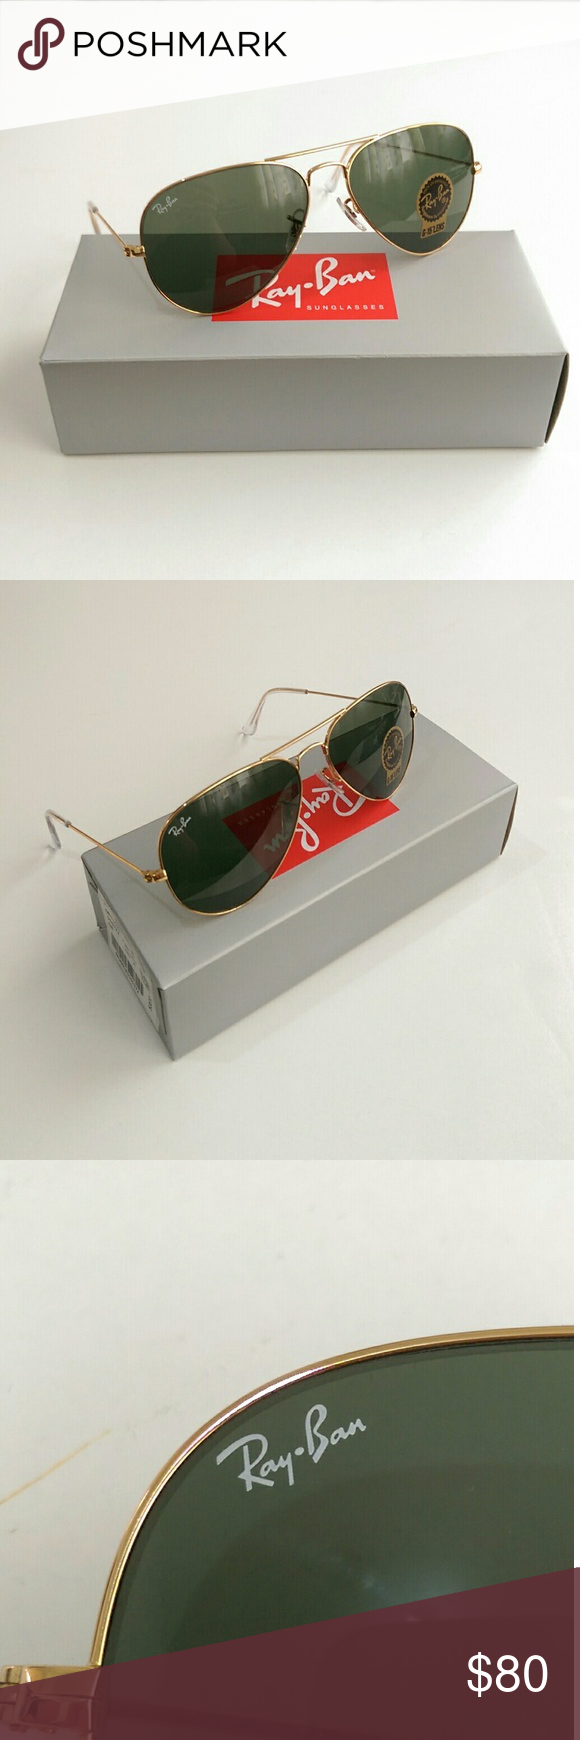 Green Ray Ban Aviator New In Box Comes With Everything Shown On The Last Picture Barcode Serial Number Is L0205 Temple 58mm Gold Frame 100